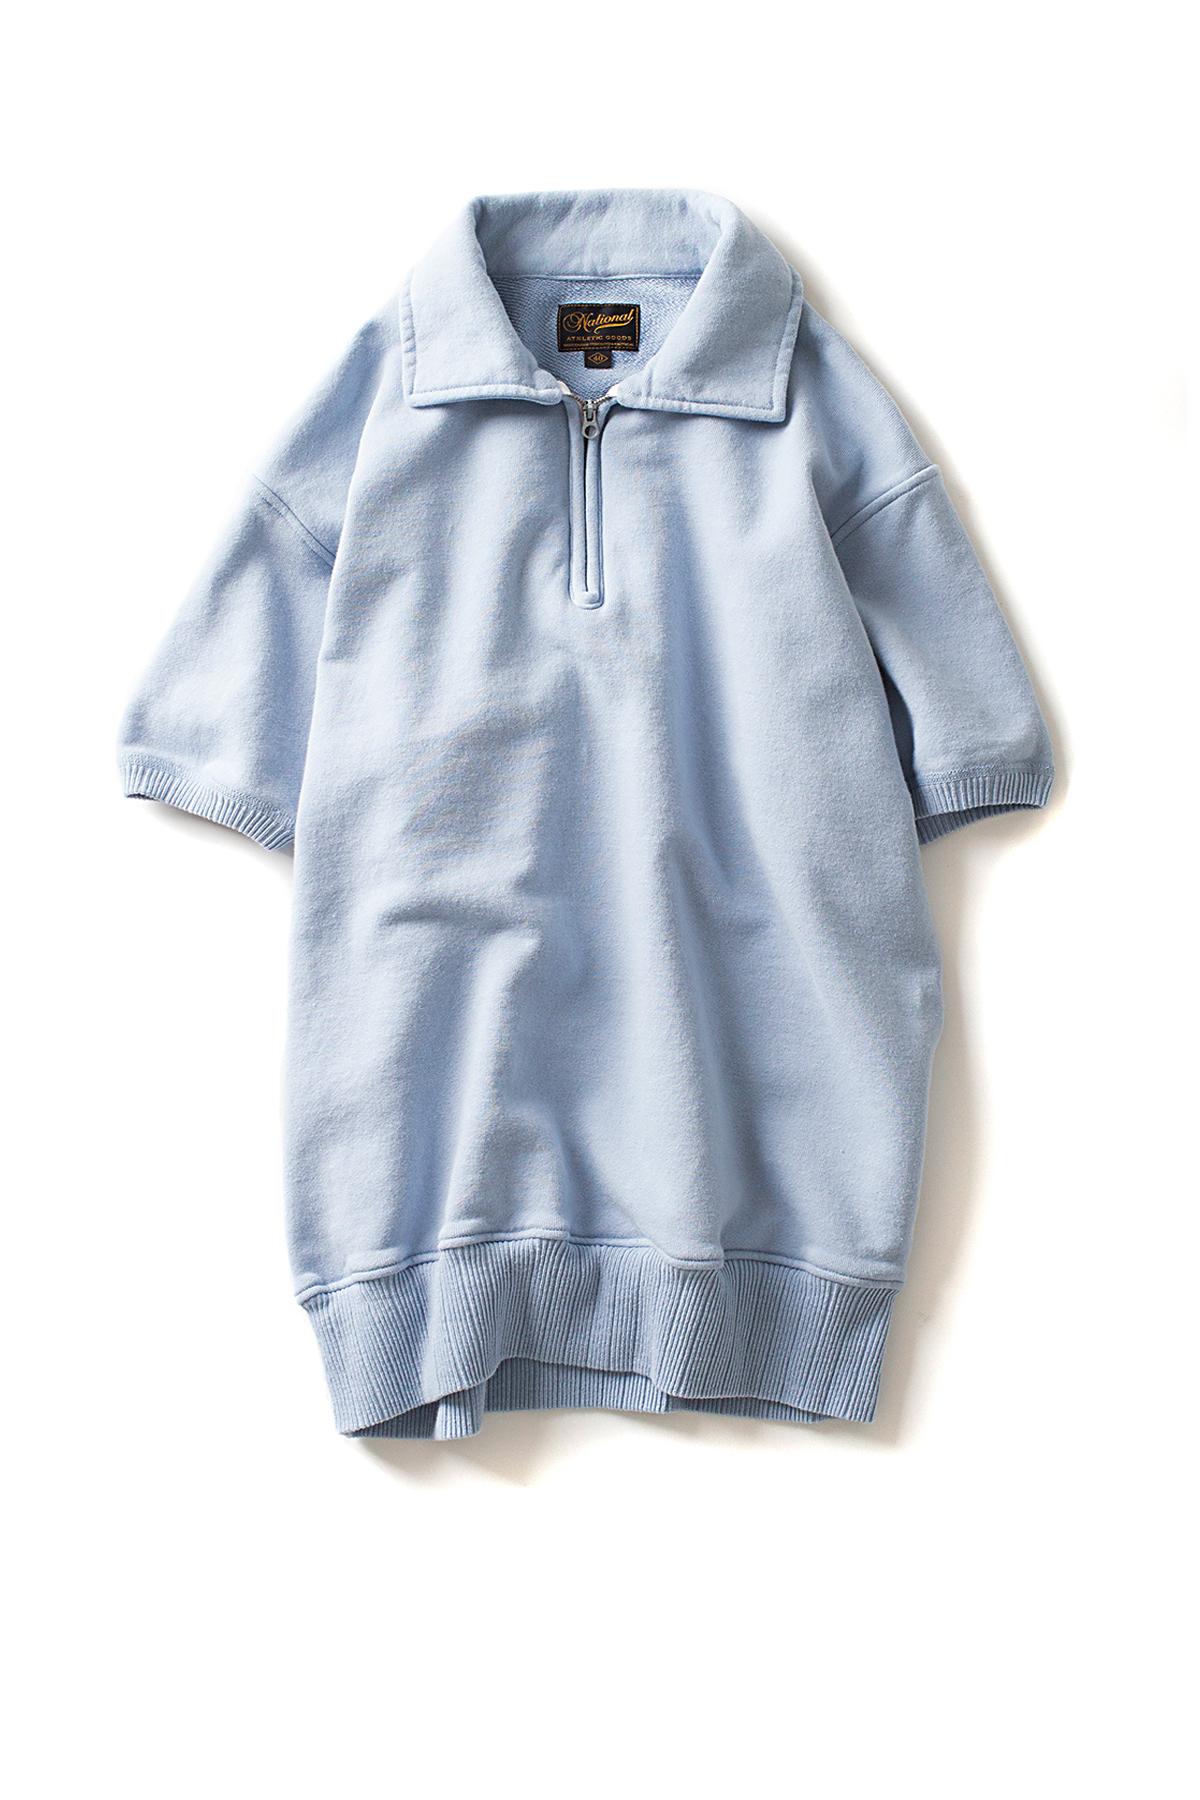 NAG : 1/4 Zip Campus S/S (Washed Blue)